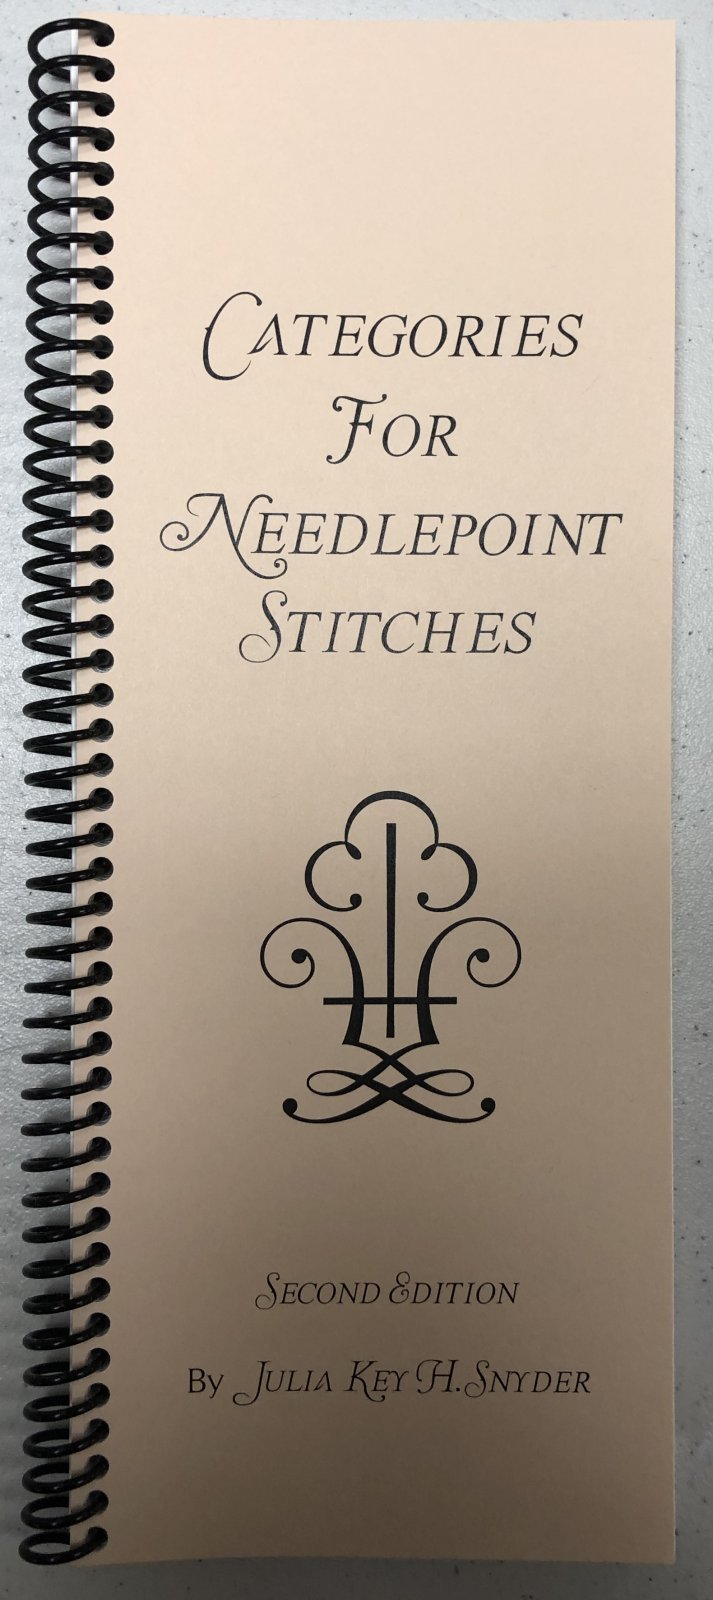 categories for needlepoint